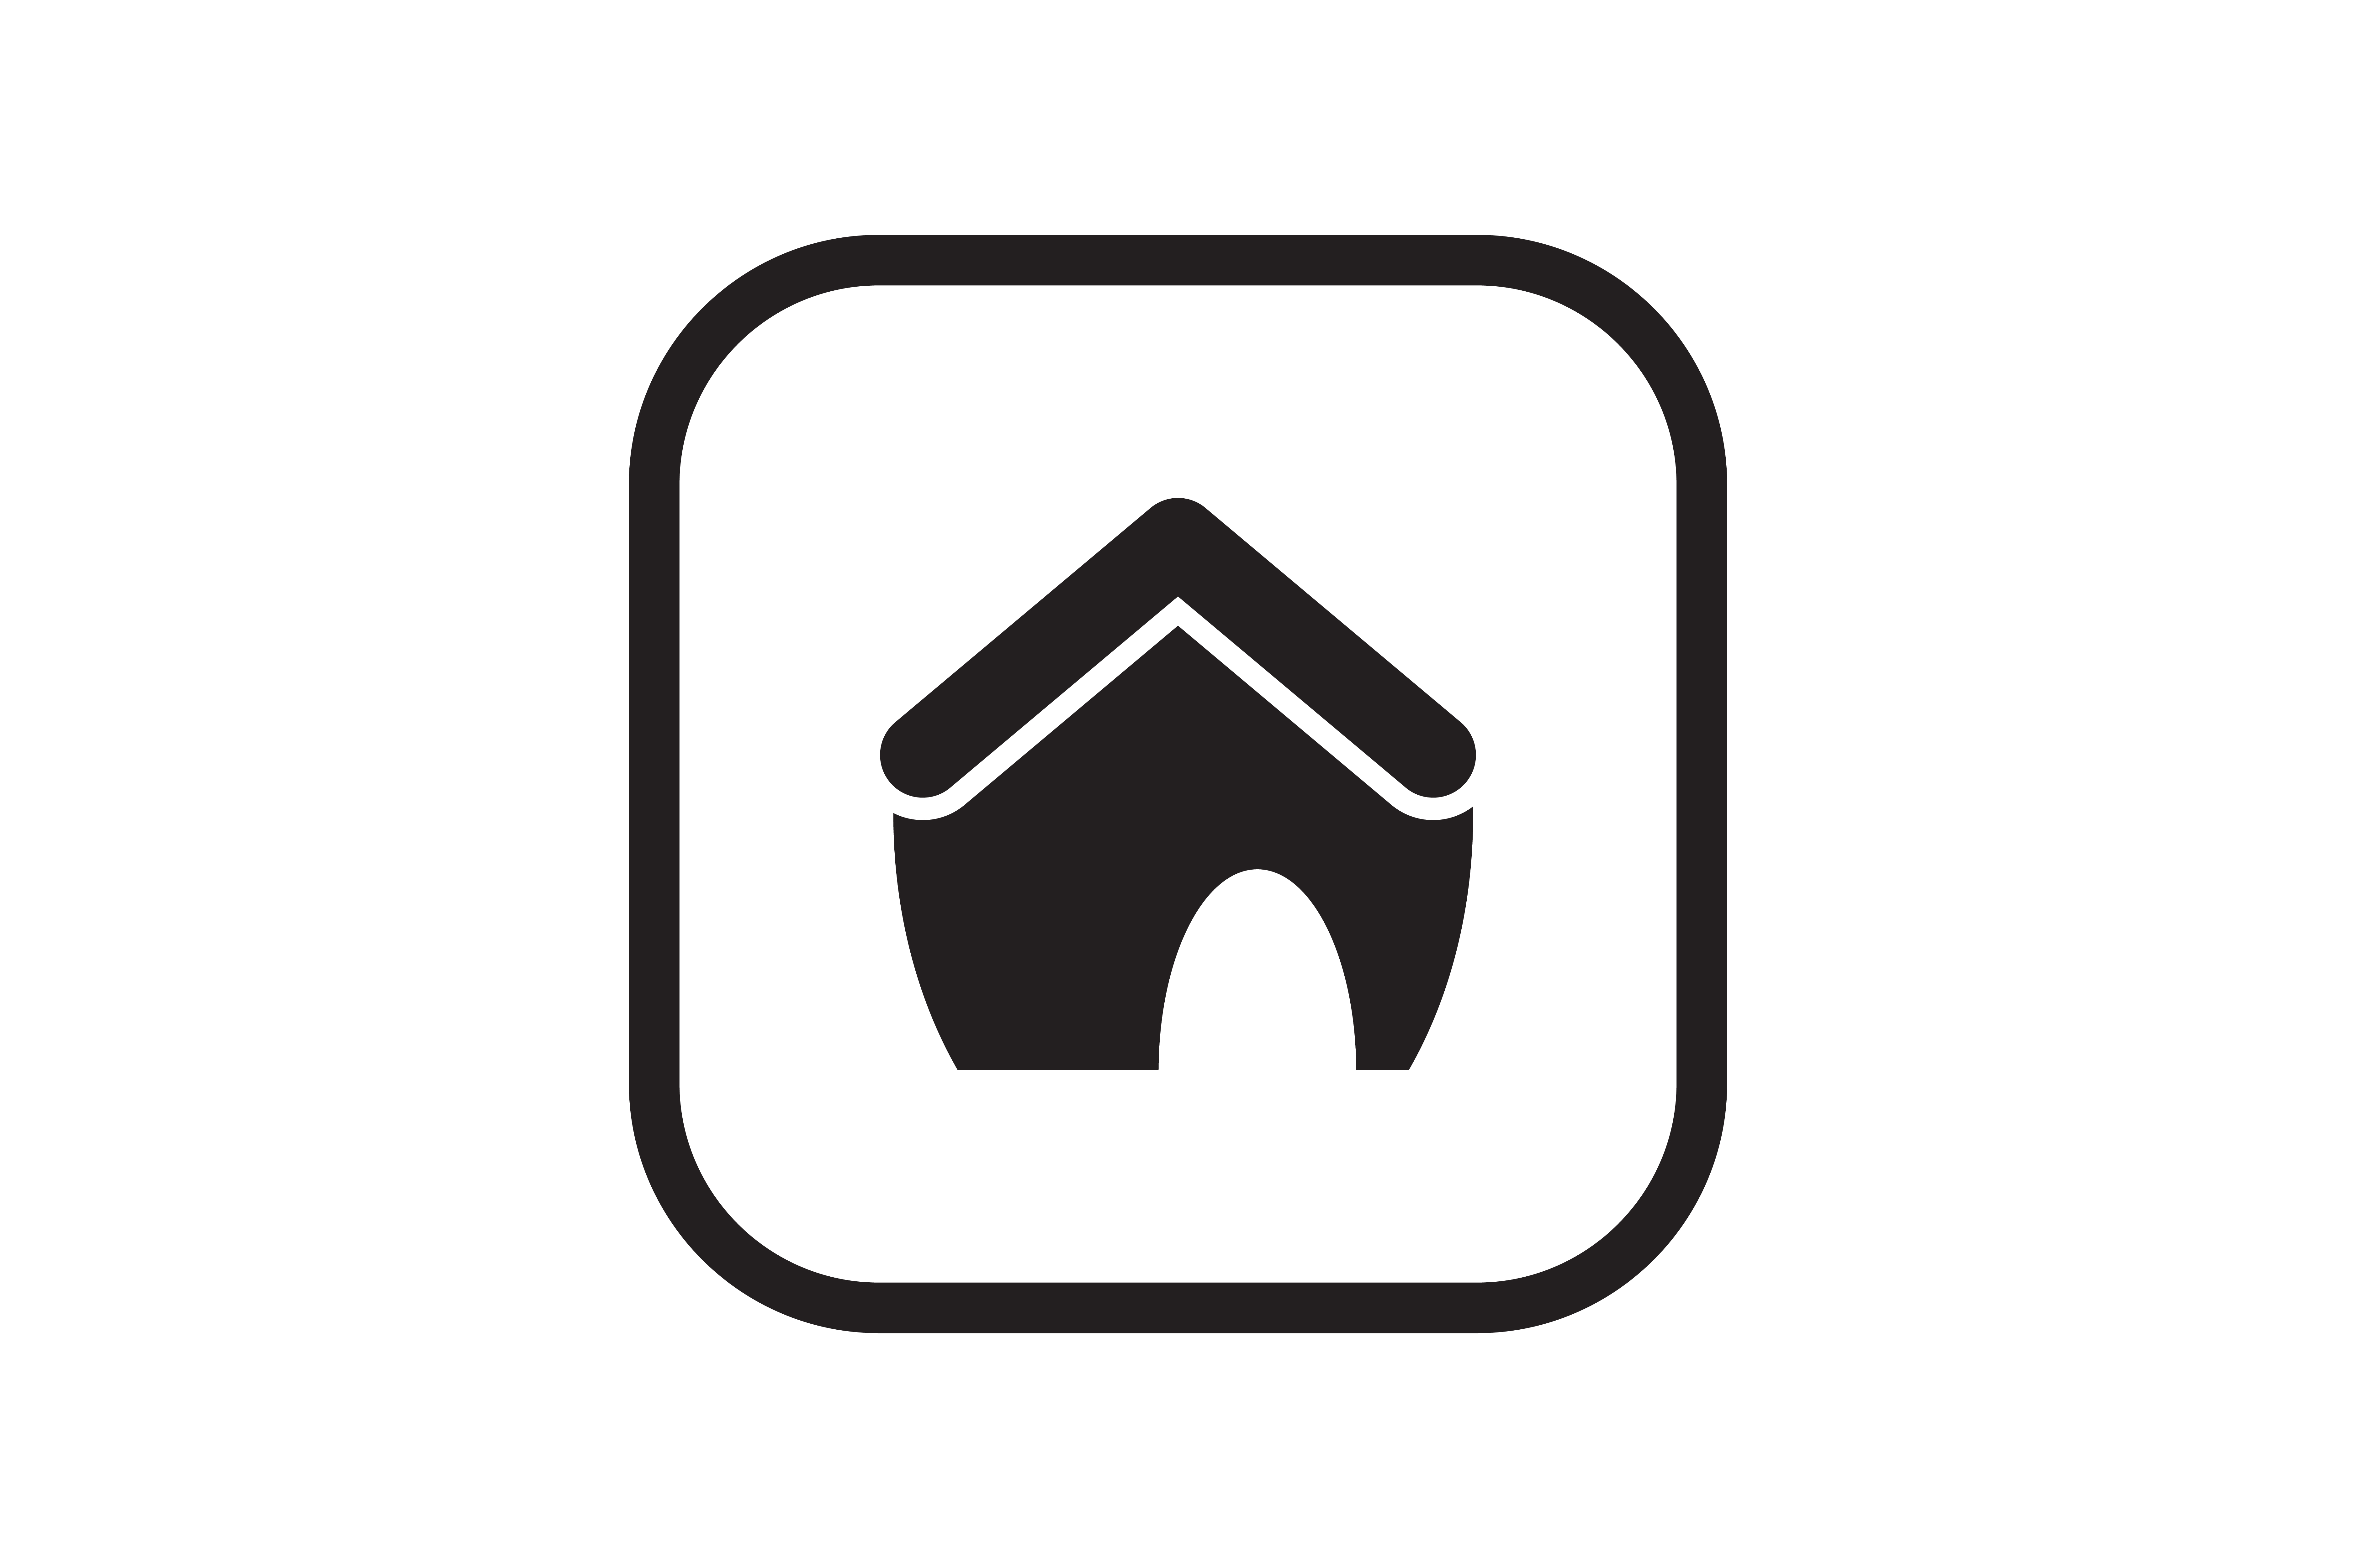 Download Free House Building Icon Graphic By Zafreeloicon Creative Fabrica for Cricut Explore, Silhouette and other cutting machines.